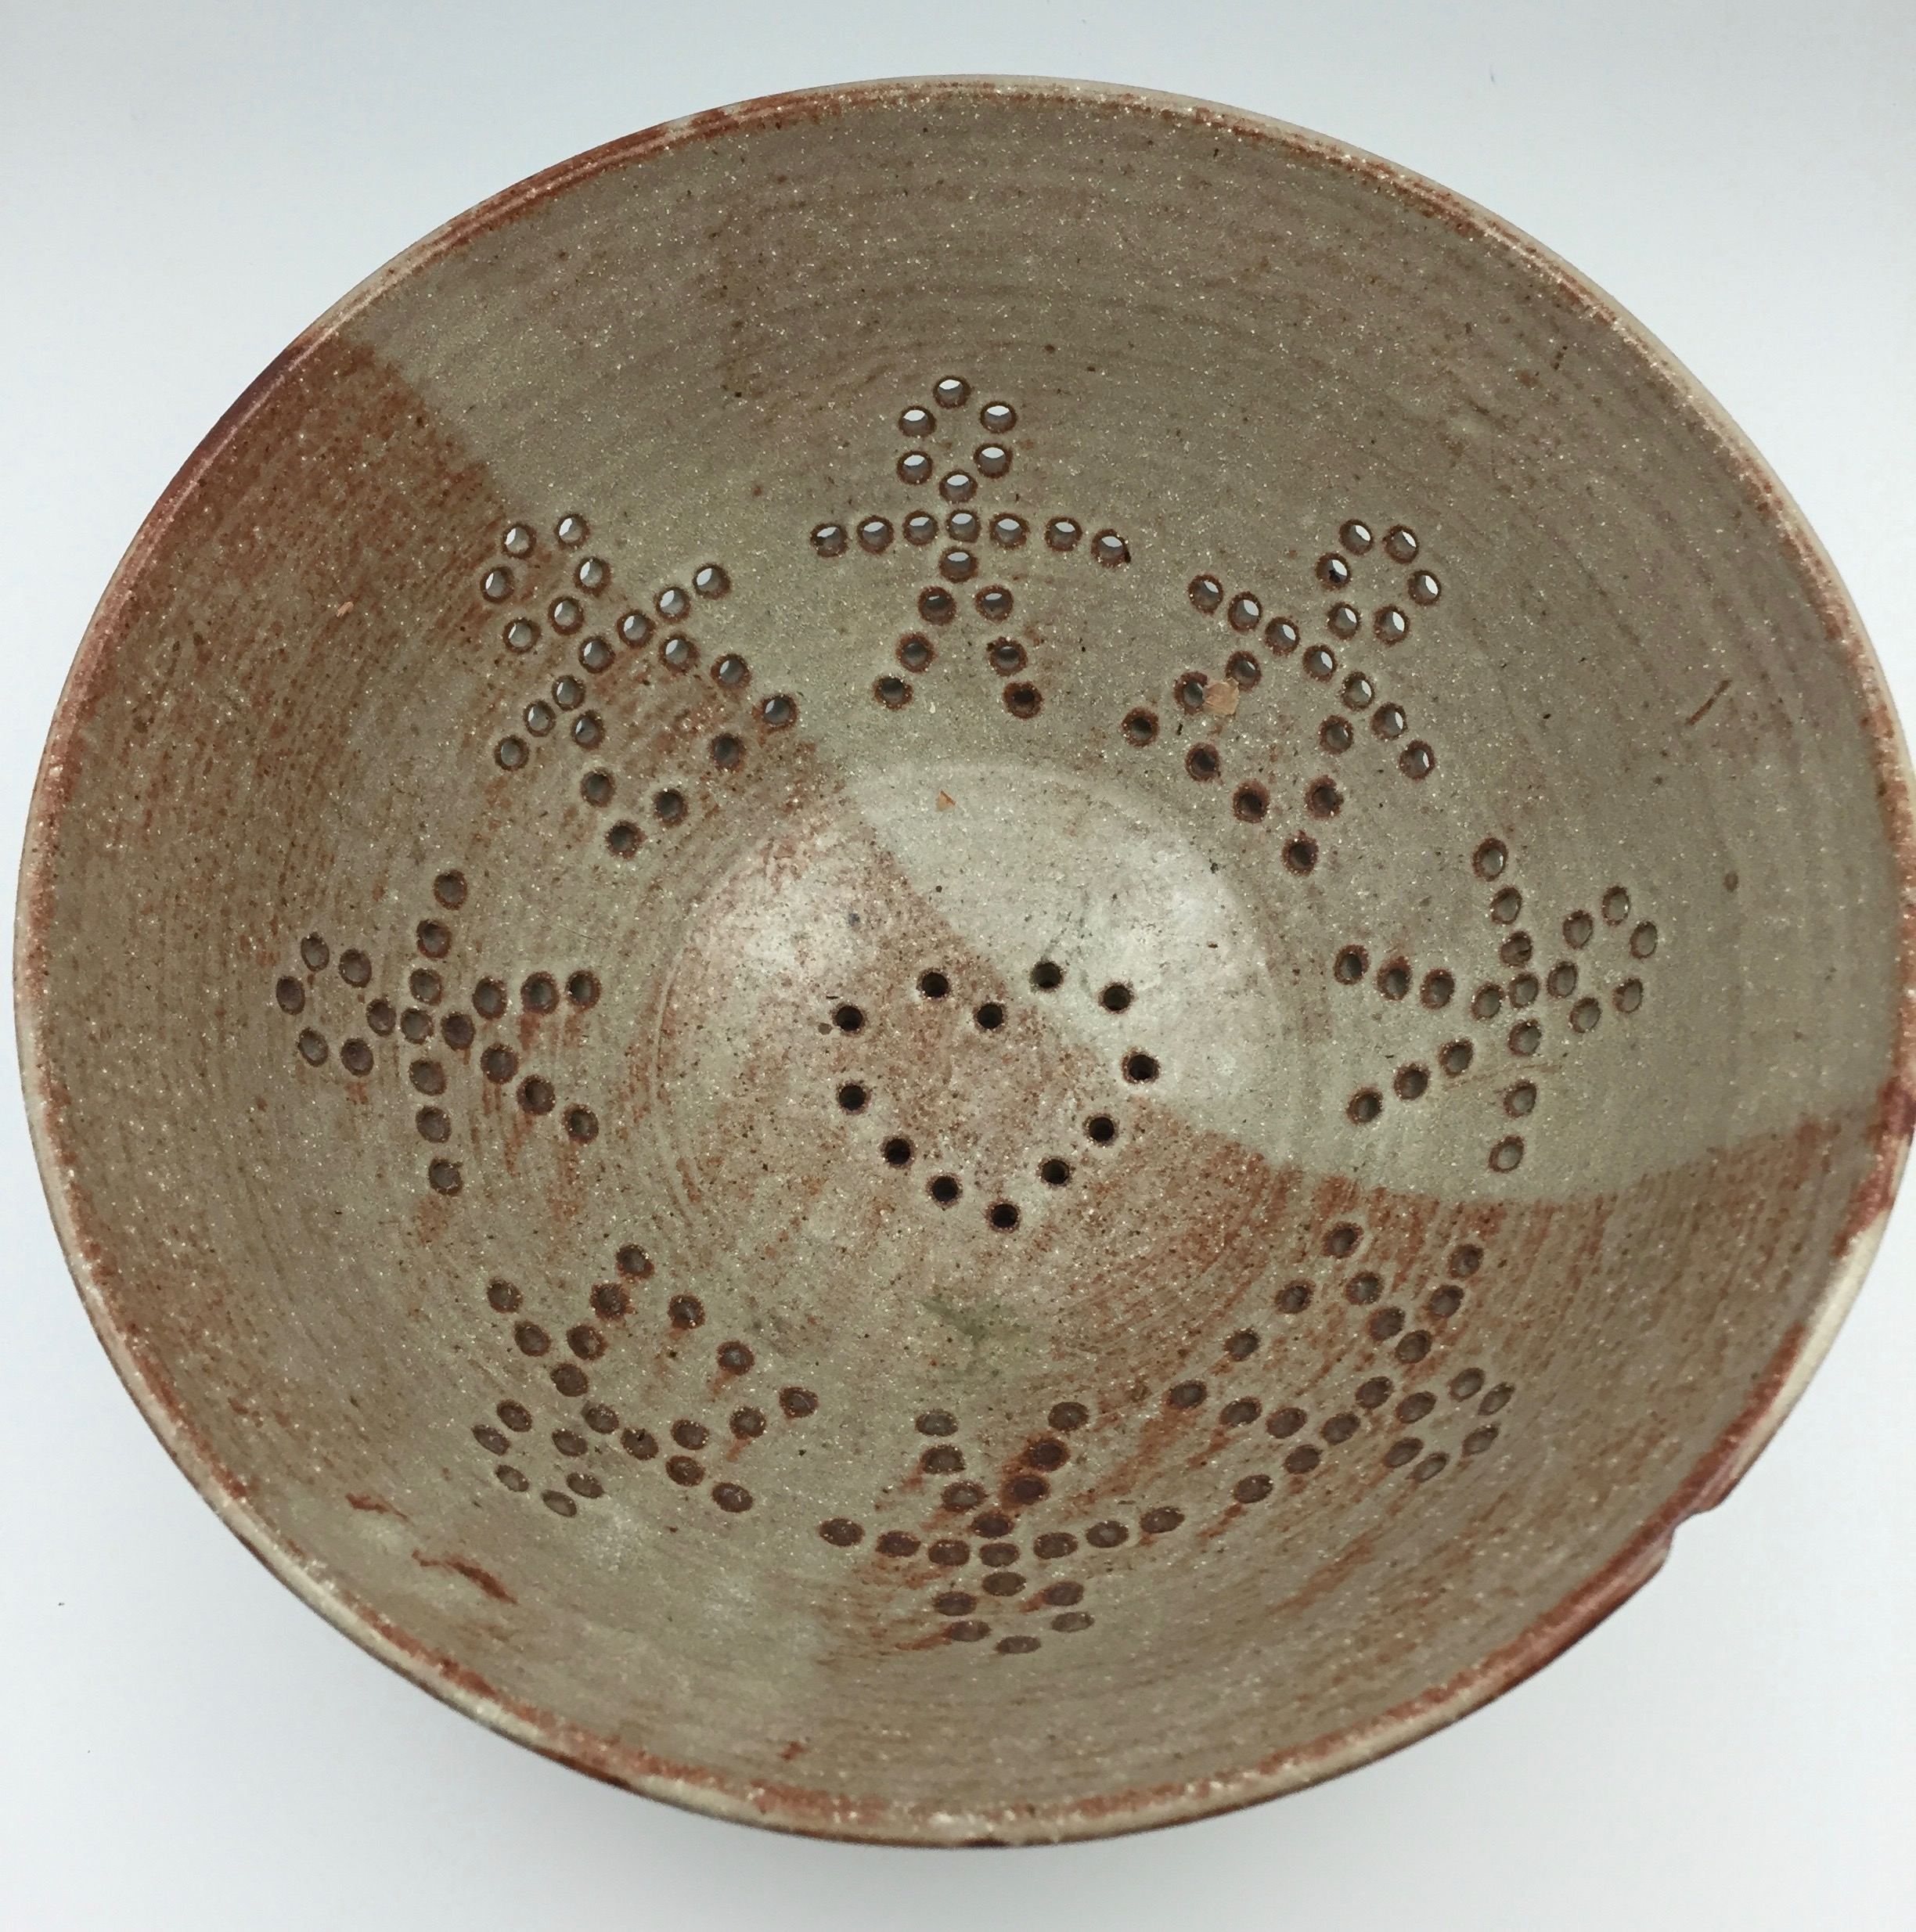 When I made this colander in 1994, I wanted the holes to be part of the design. I liked the idea of using a cut-out doll image encircling the bowl with a heart at the base. It's still one of my favorite patterns!